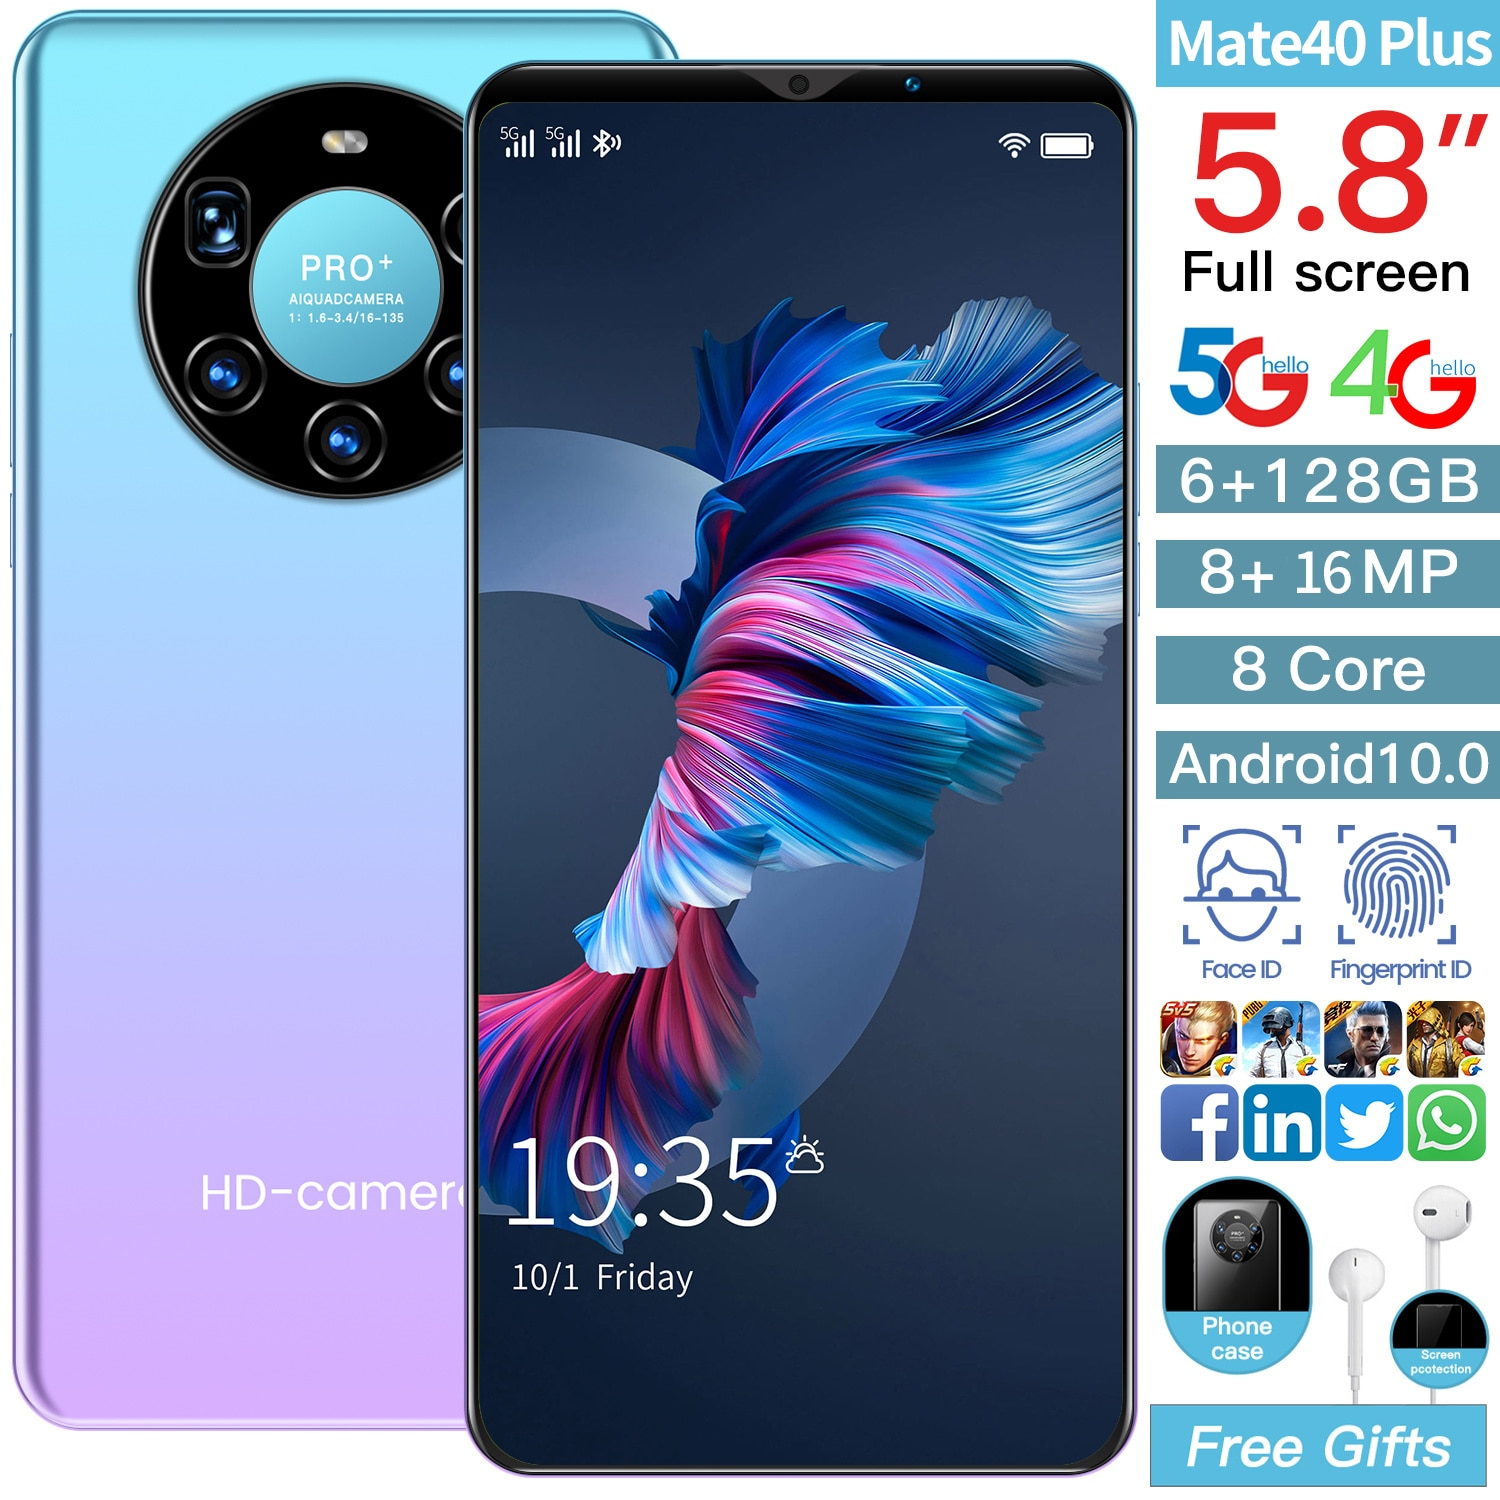 Global Version Mate 40 Plus 4G Smartphone 6.1 inch 8+16MP Mobile Phone Dual Sim Card 6GB RAM + 128GB